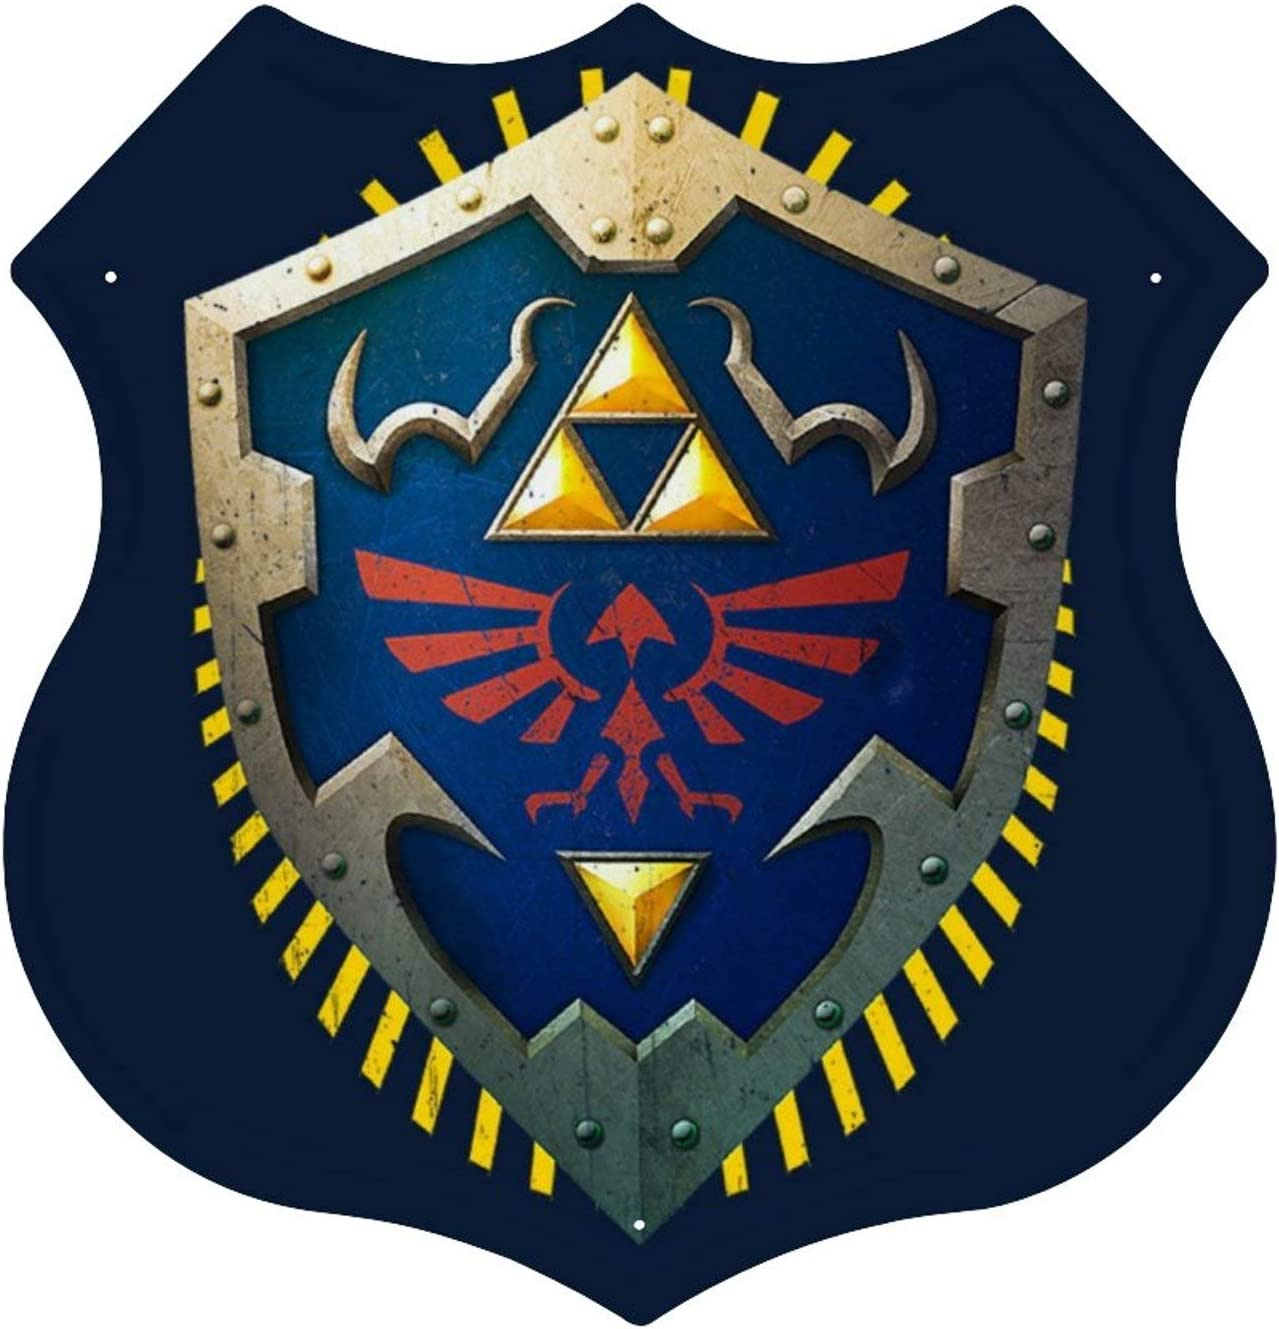 Hylian Shield Legend Of Zelda Triforce Tin Sign Metal Plate (Shield Shape) Personalized Metal Sign Art Metal Hanging Painting 12 x 12 inches